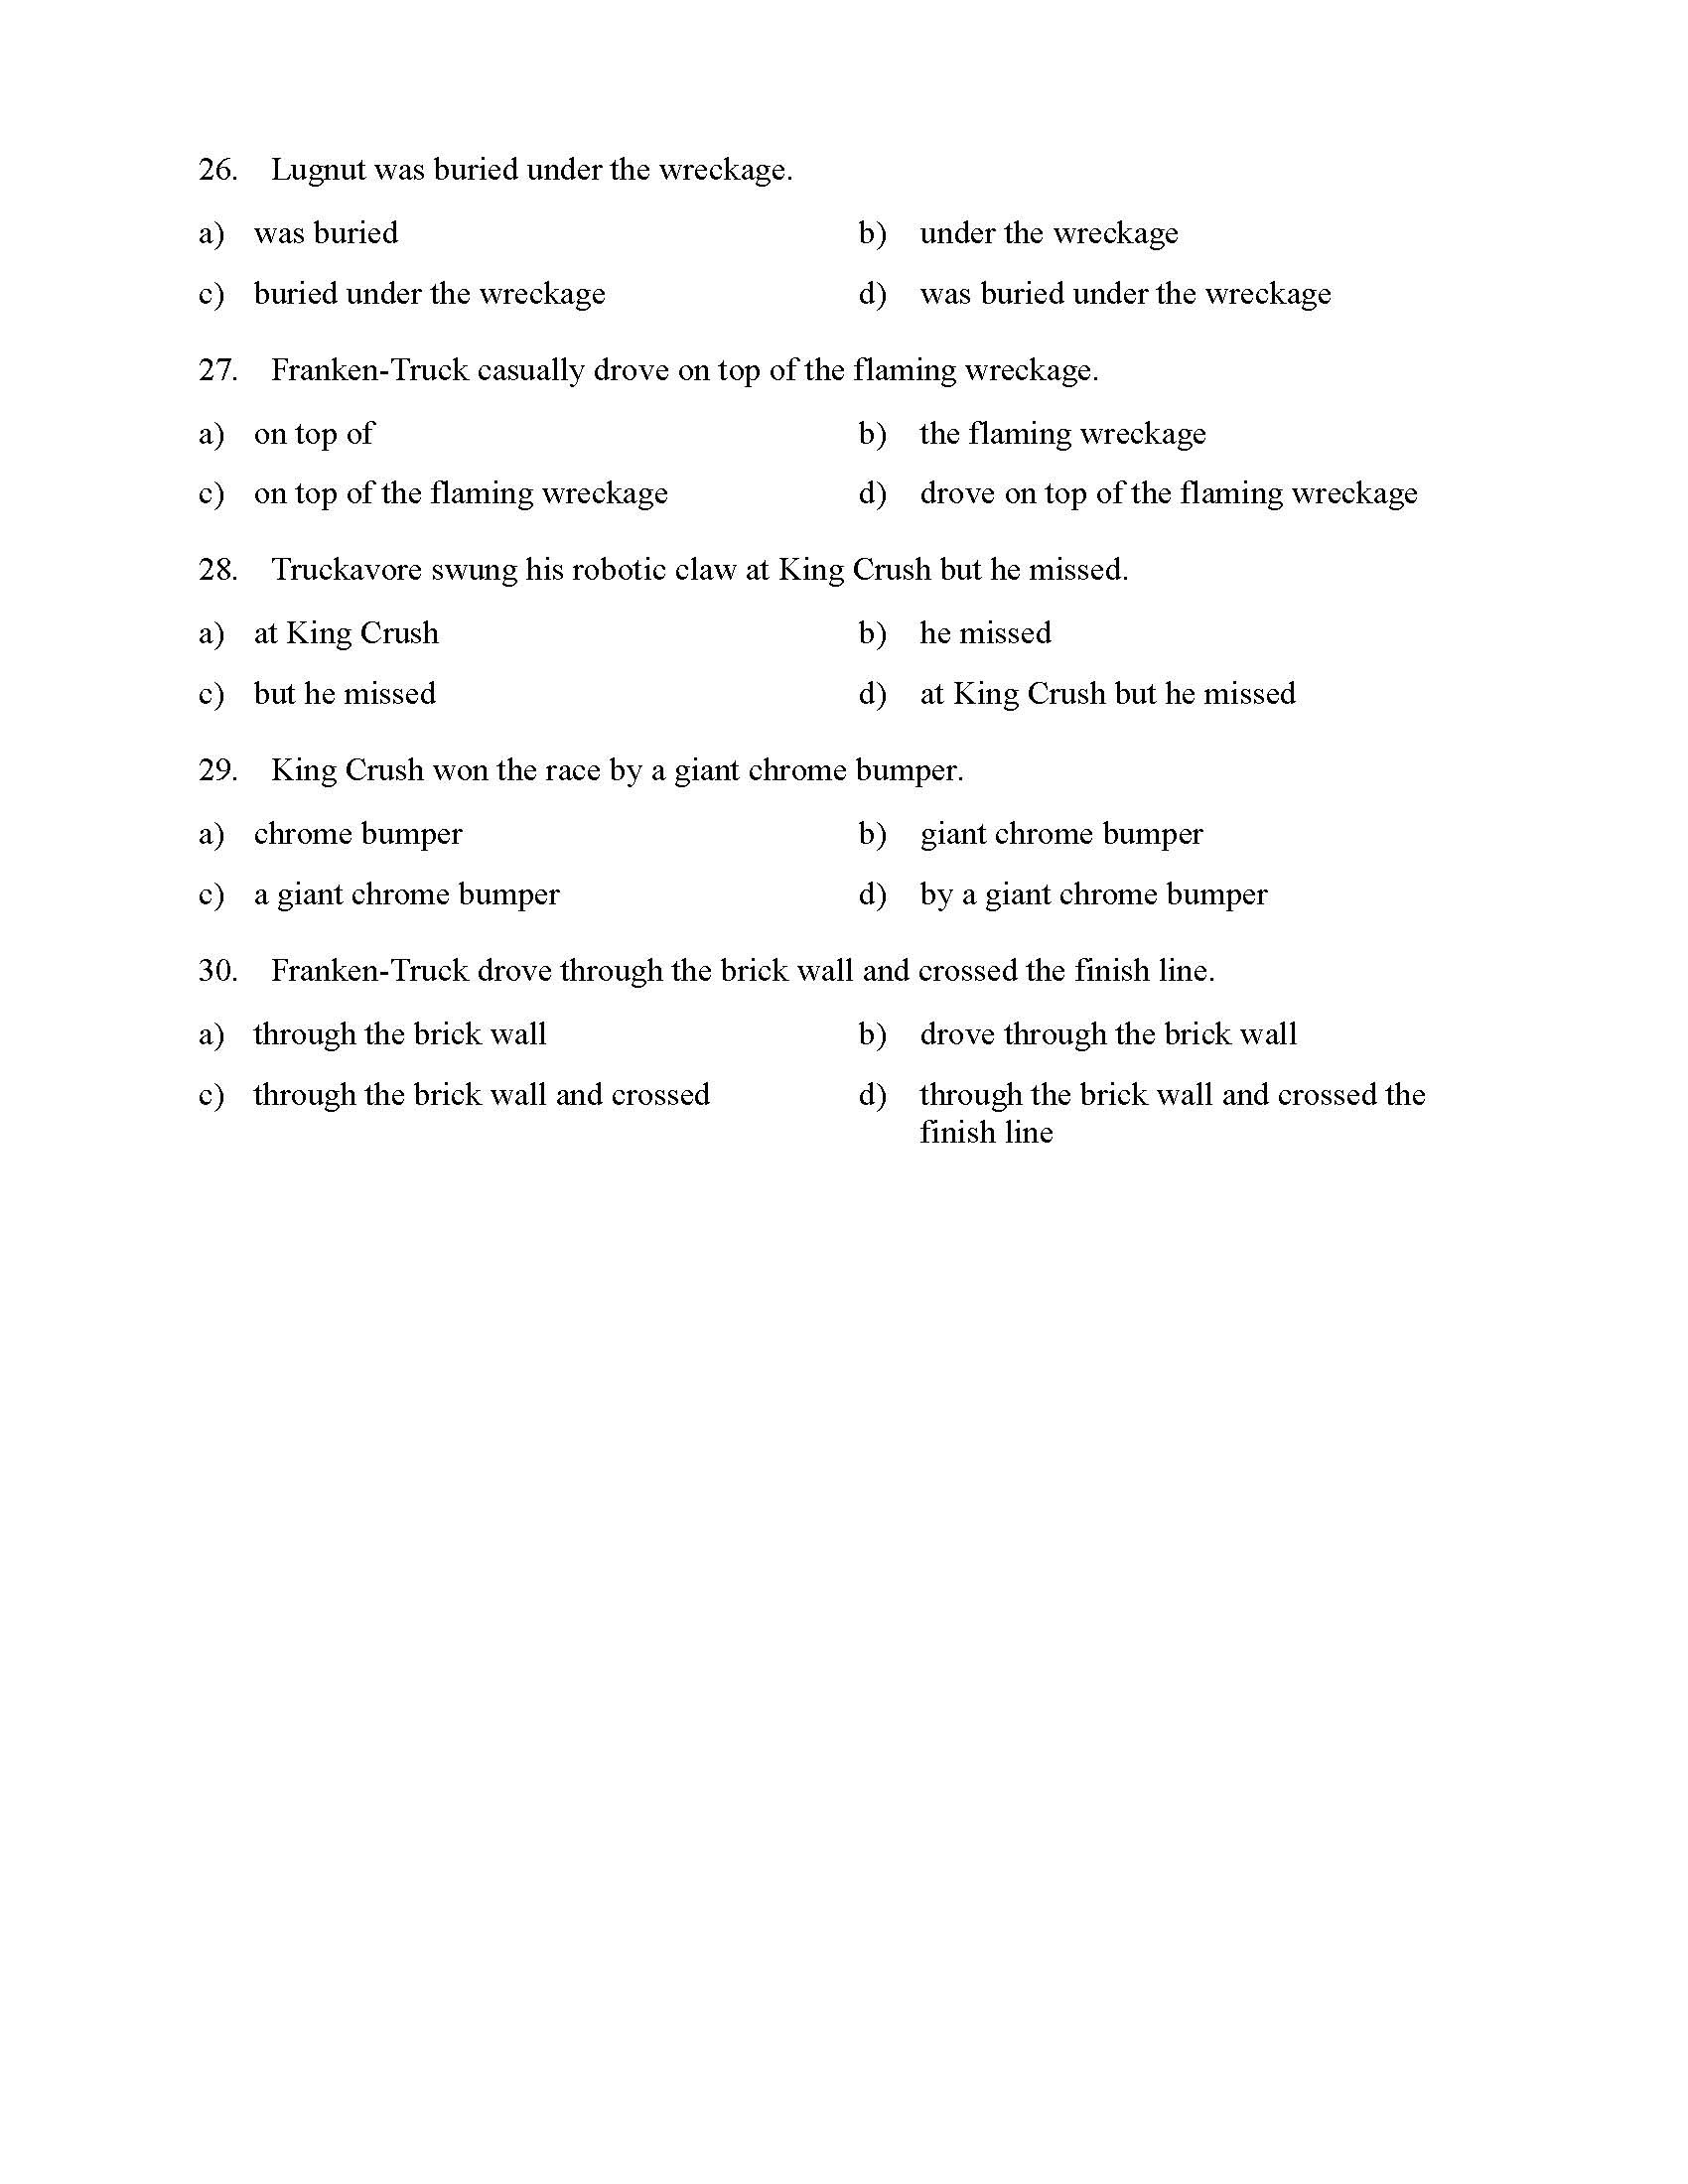 Prepositional Phrases Worksheet 6th Grade Educational Template Design Our story structure worksheets contain practice activities include using checklists, flow charts and guides to break a story in parts. prepositional phrases worksheet 6th